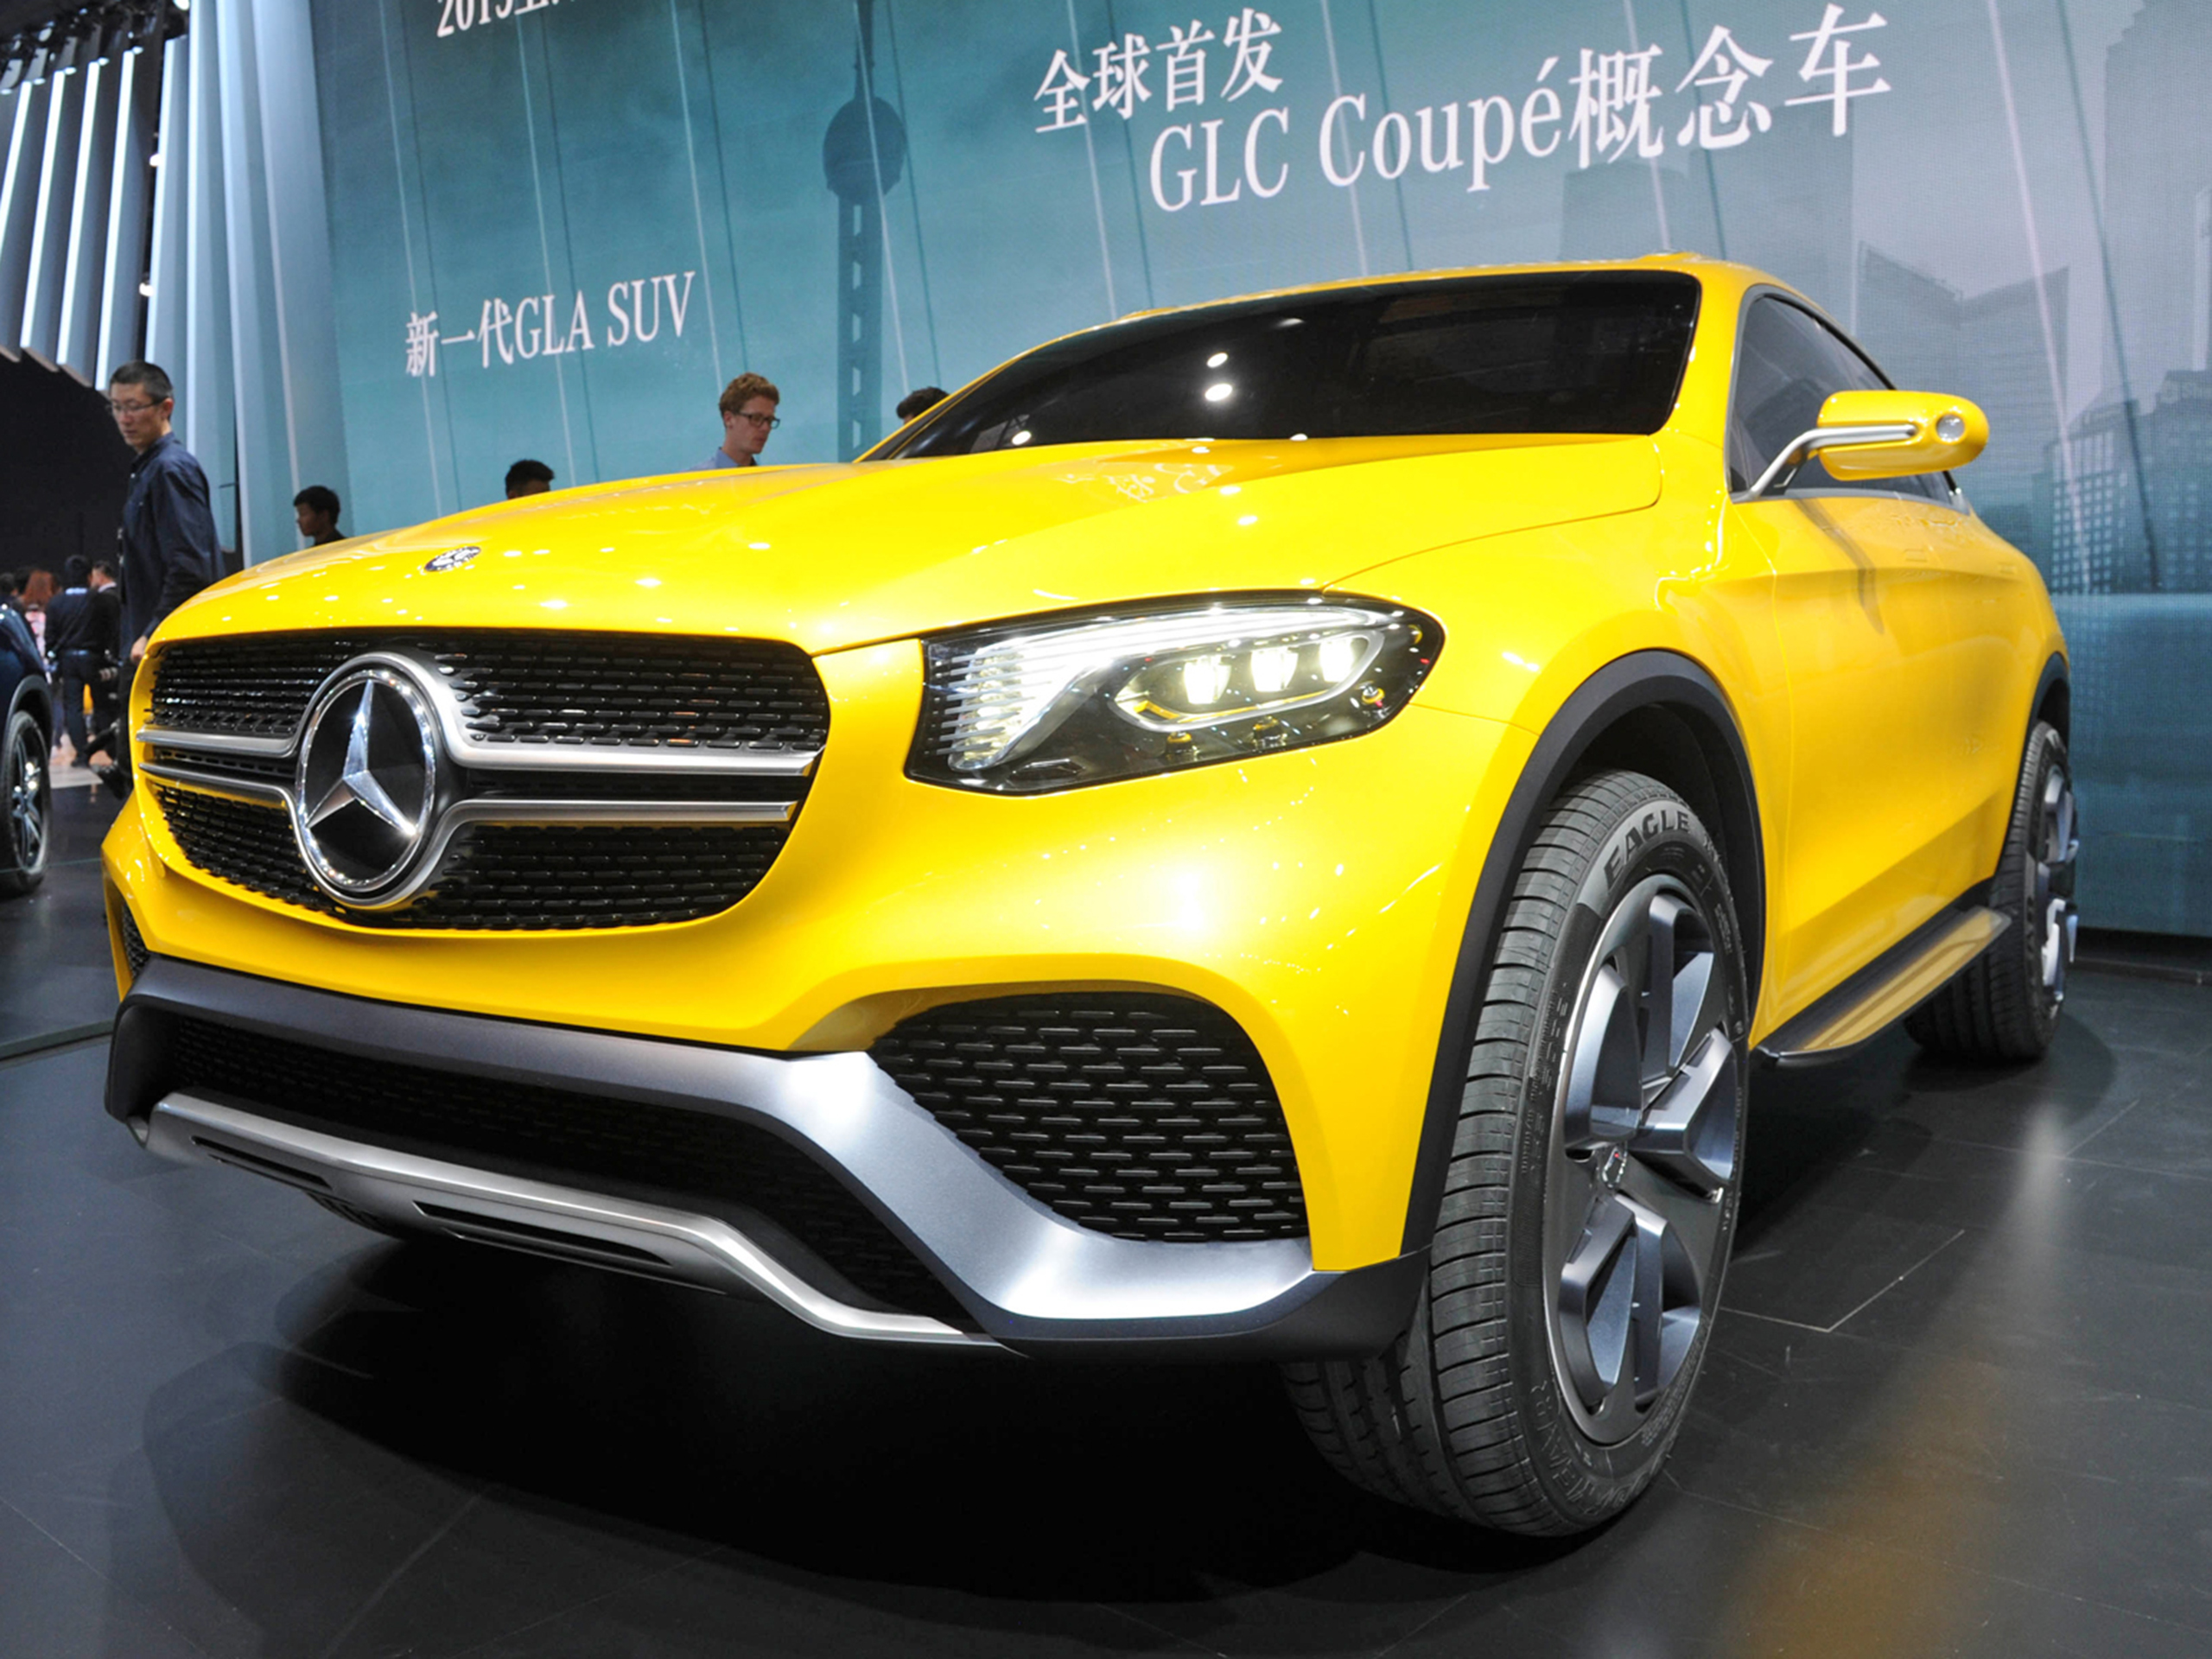 mercedes glc coup concept 2015 suv coup in shanghai. Black Bedroom Furniture Sets. Home Design Ideas